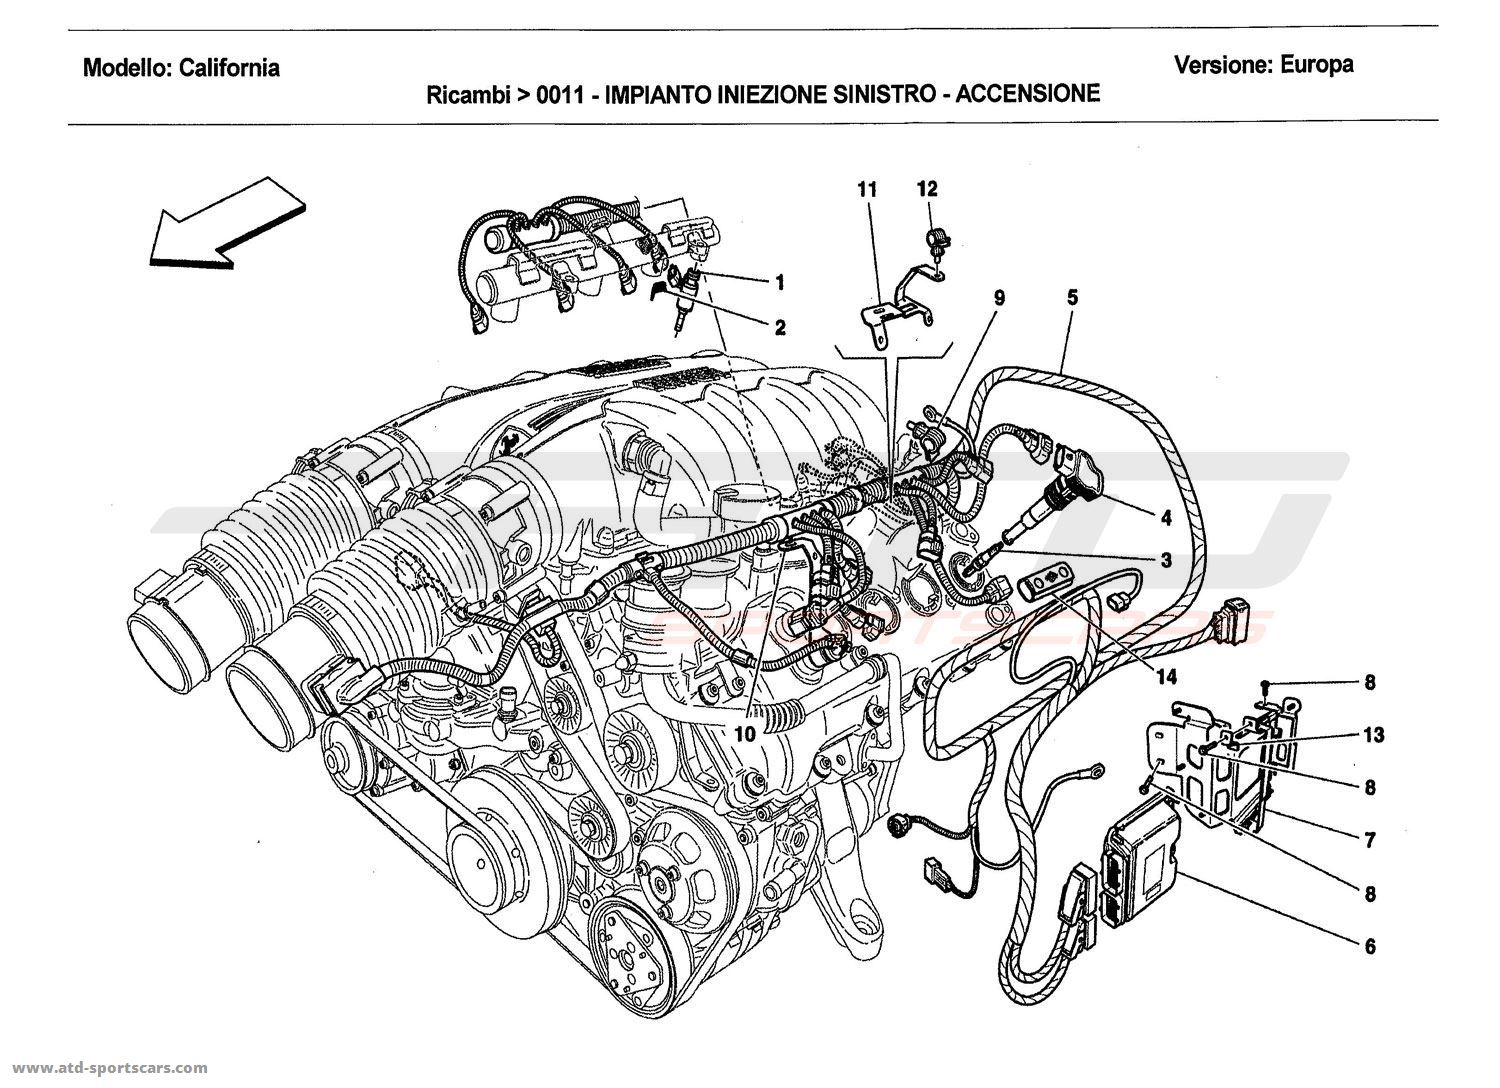 LEFT HAND INJECTION SYSTEM - IGNITION